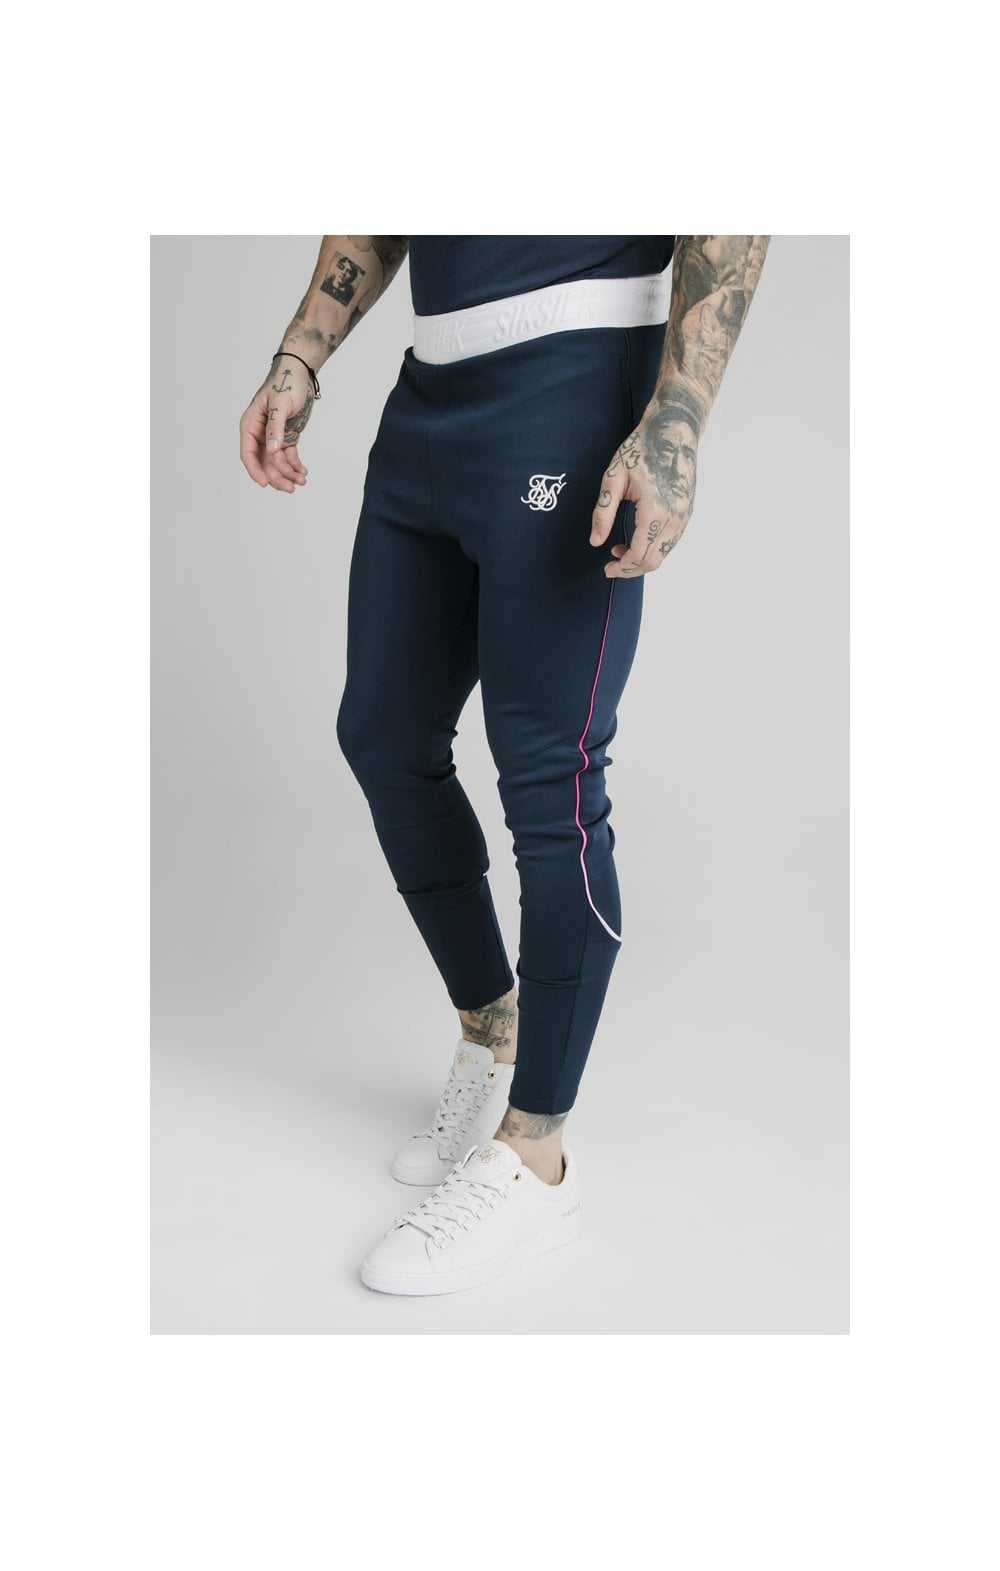 Load image into Gallery viewer, SikSilk Athlete Prestige Fade Track Pants - Navy (2)